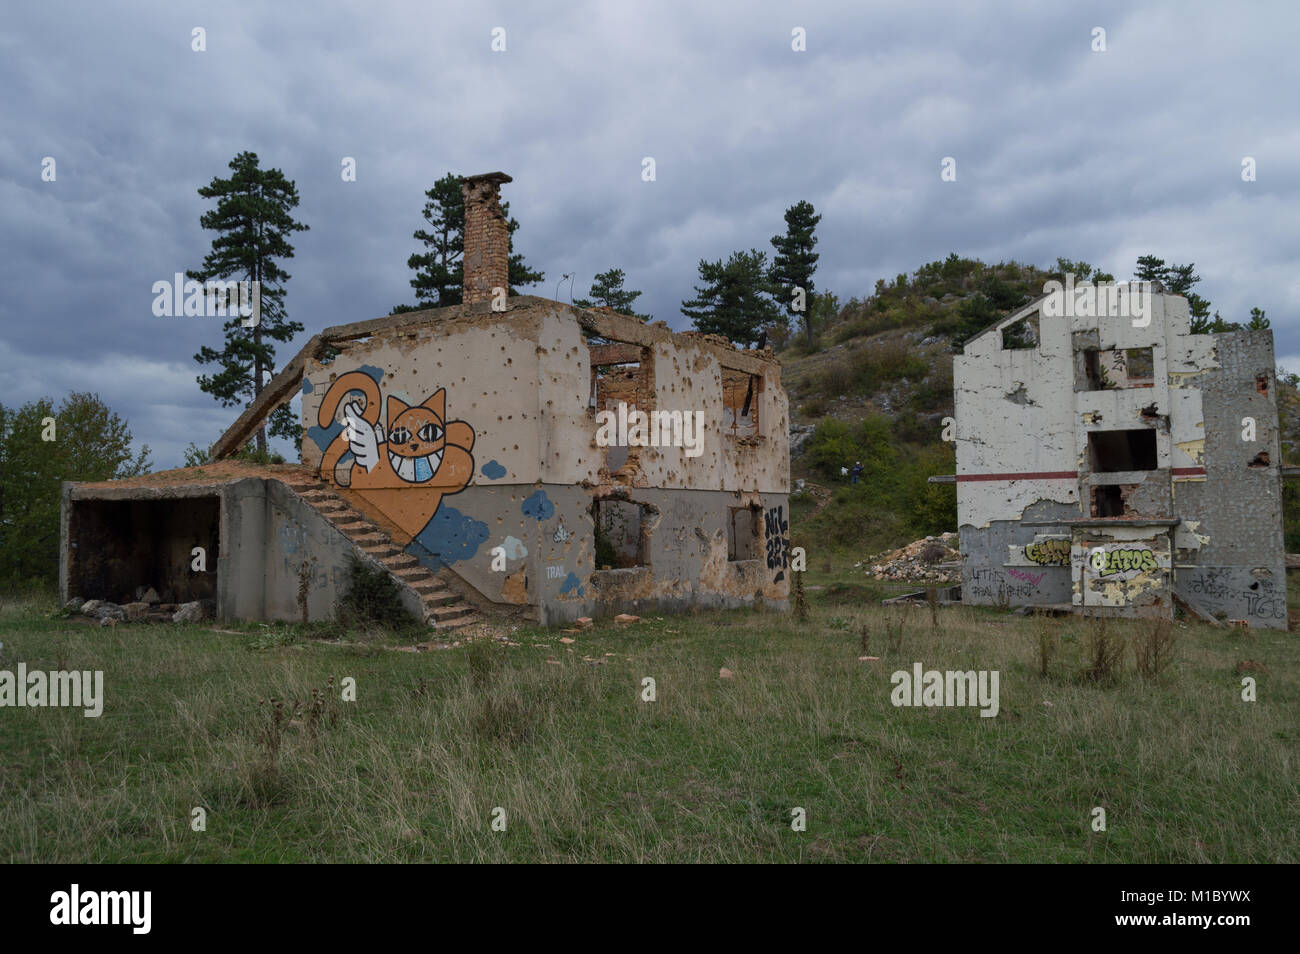 Abandoned Houses with Bullet Holes in Sarajevo, Bosnia and Herzegovina - Stock Image